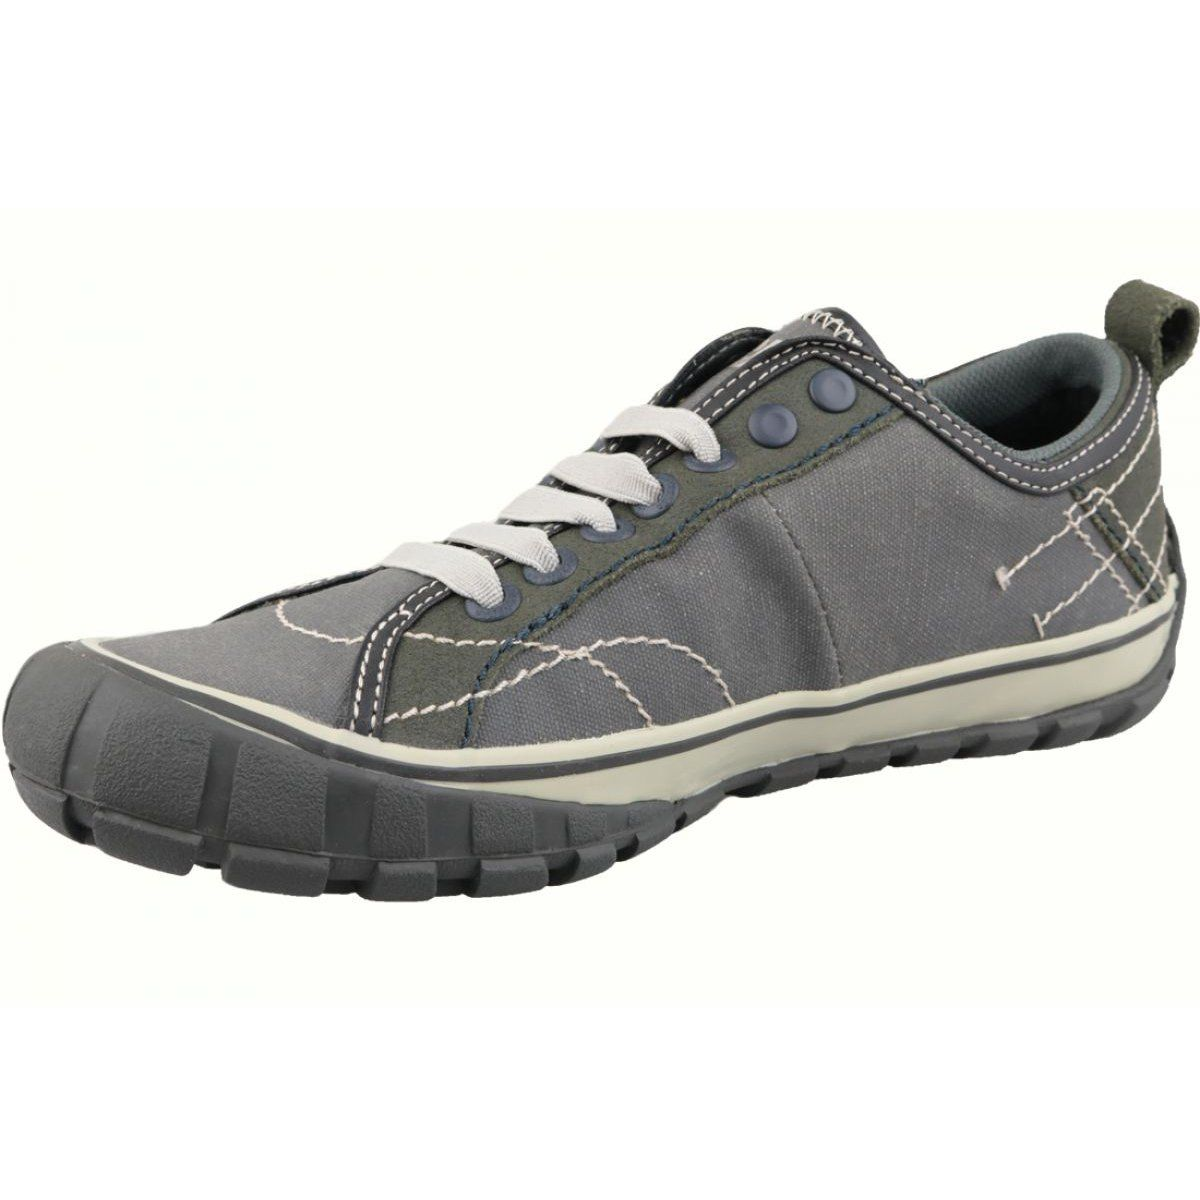 Buty Caterpillar Neder Canvas M P713031 Szare Boots Hiking Boots Sneakers